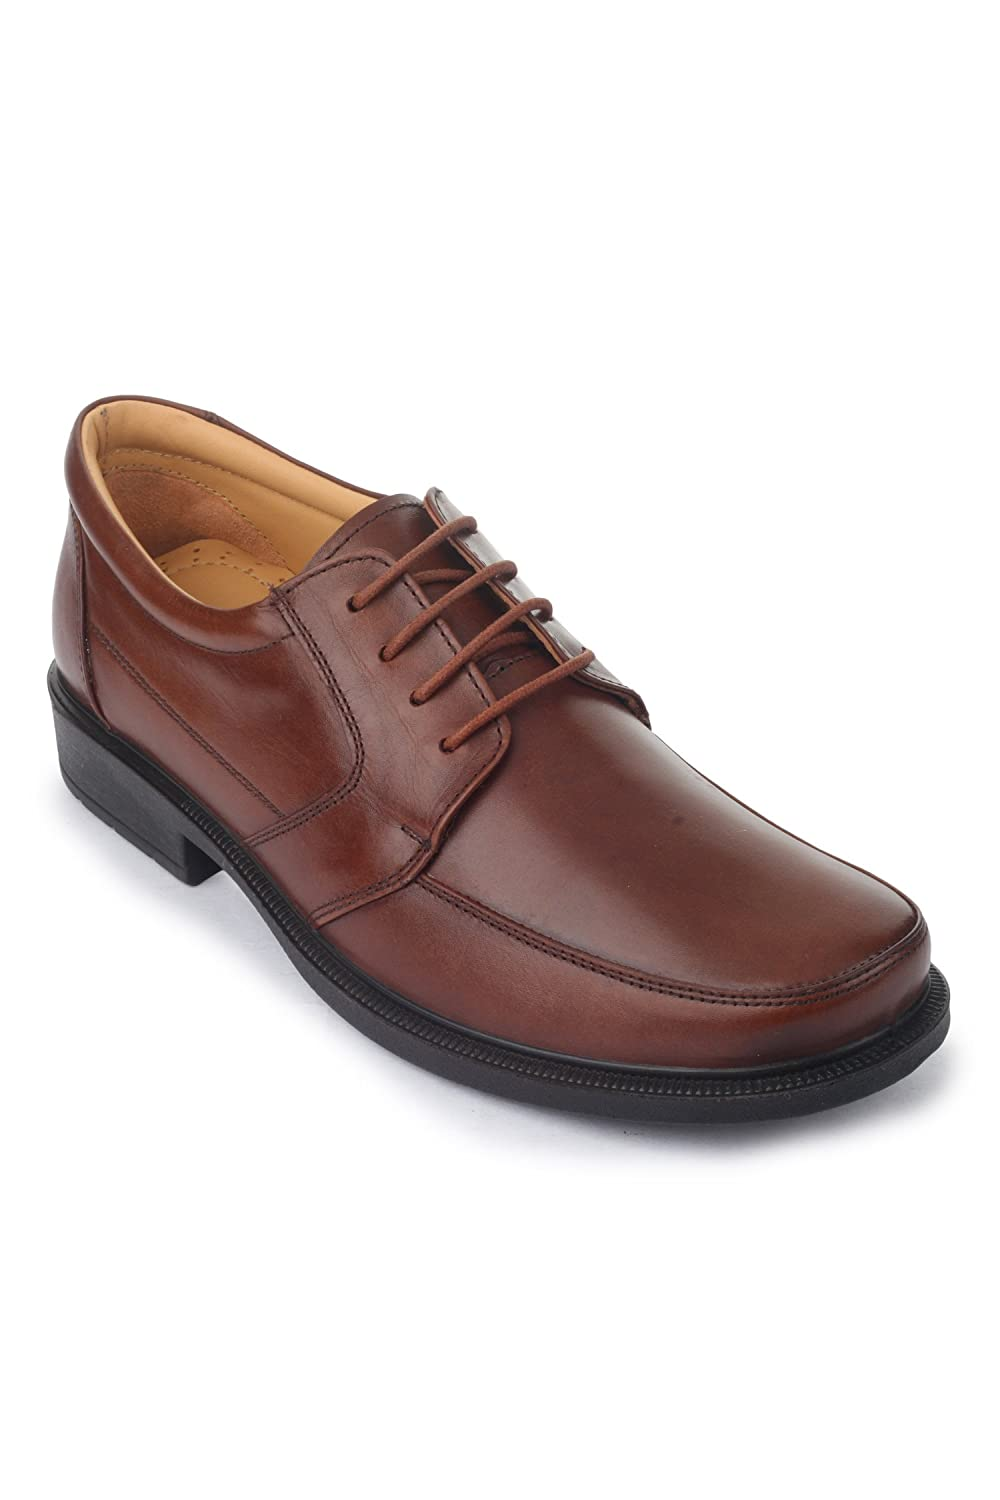 Liberty Men's Genuine Leather Classic Round Toe Dress Shoes